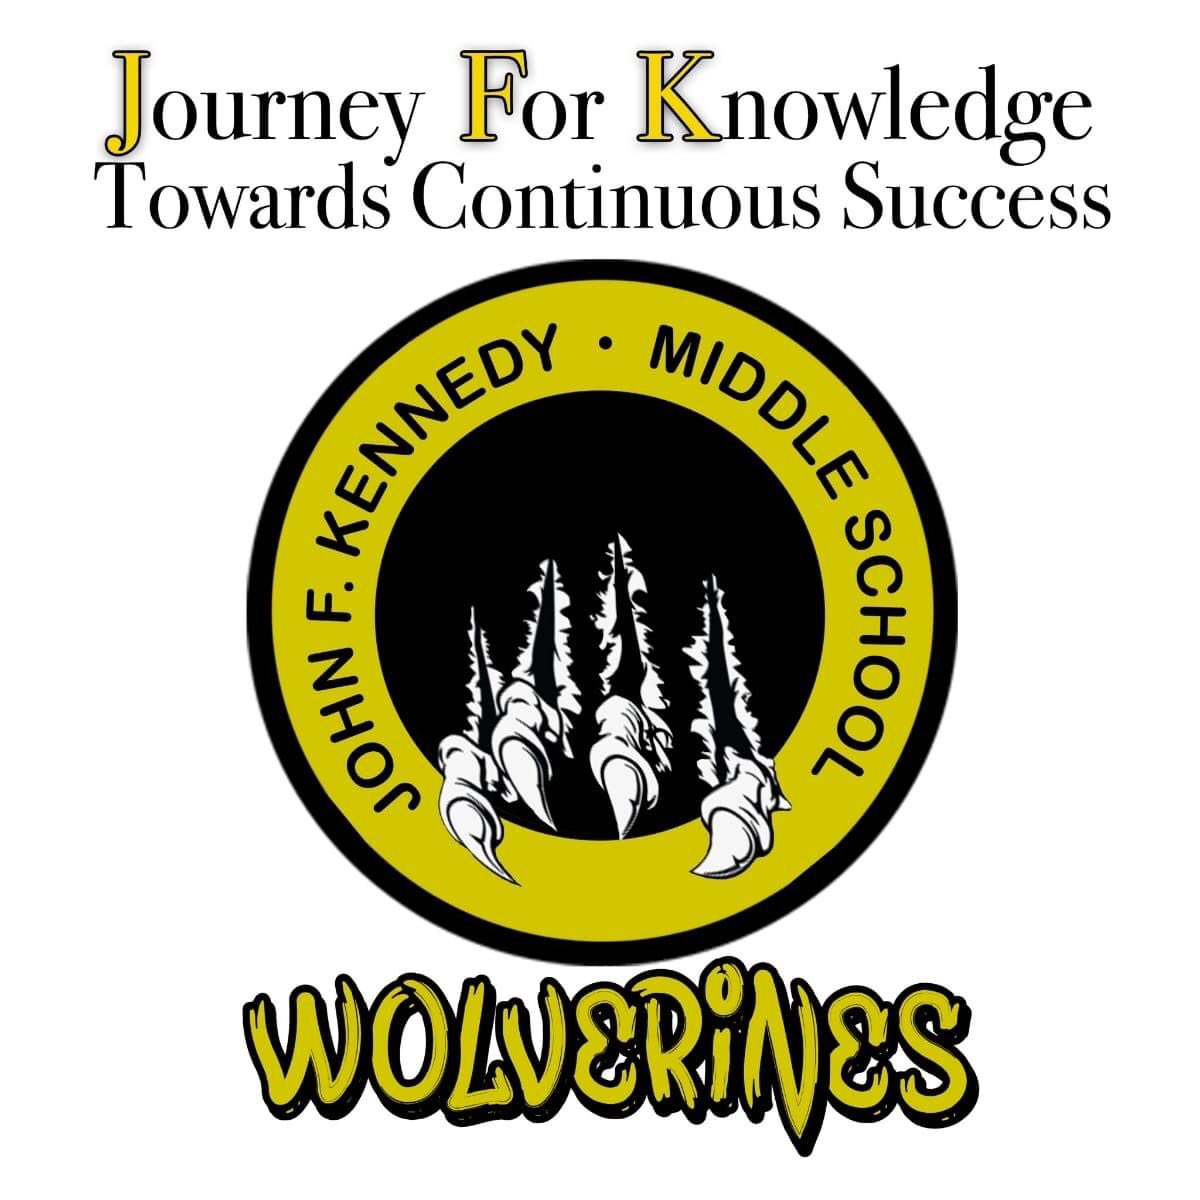 Are you ready for the journey? The Wolverines are ready!! @jfkwolverines @JFK_AP